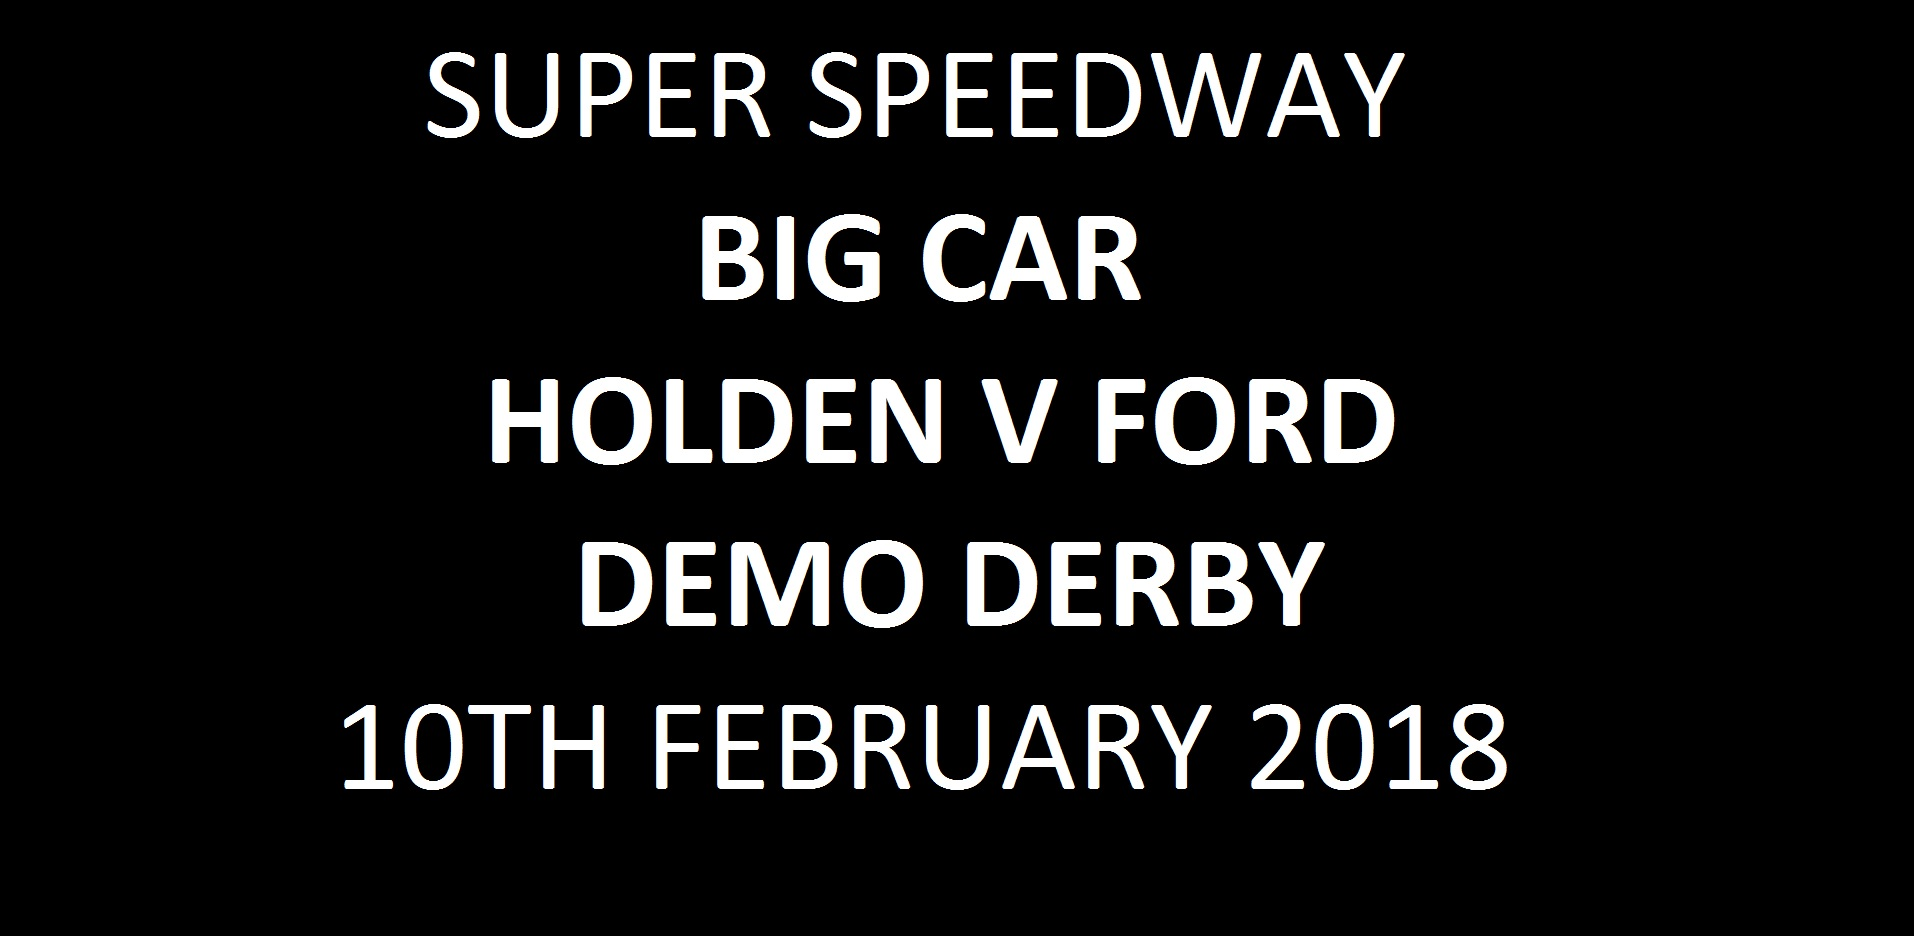 08. Super Speedway & Demo Derby - 10th February 2018 Image